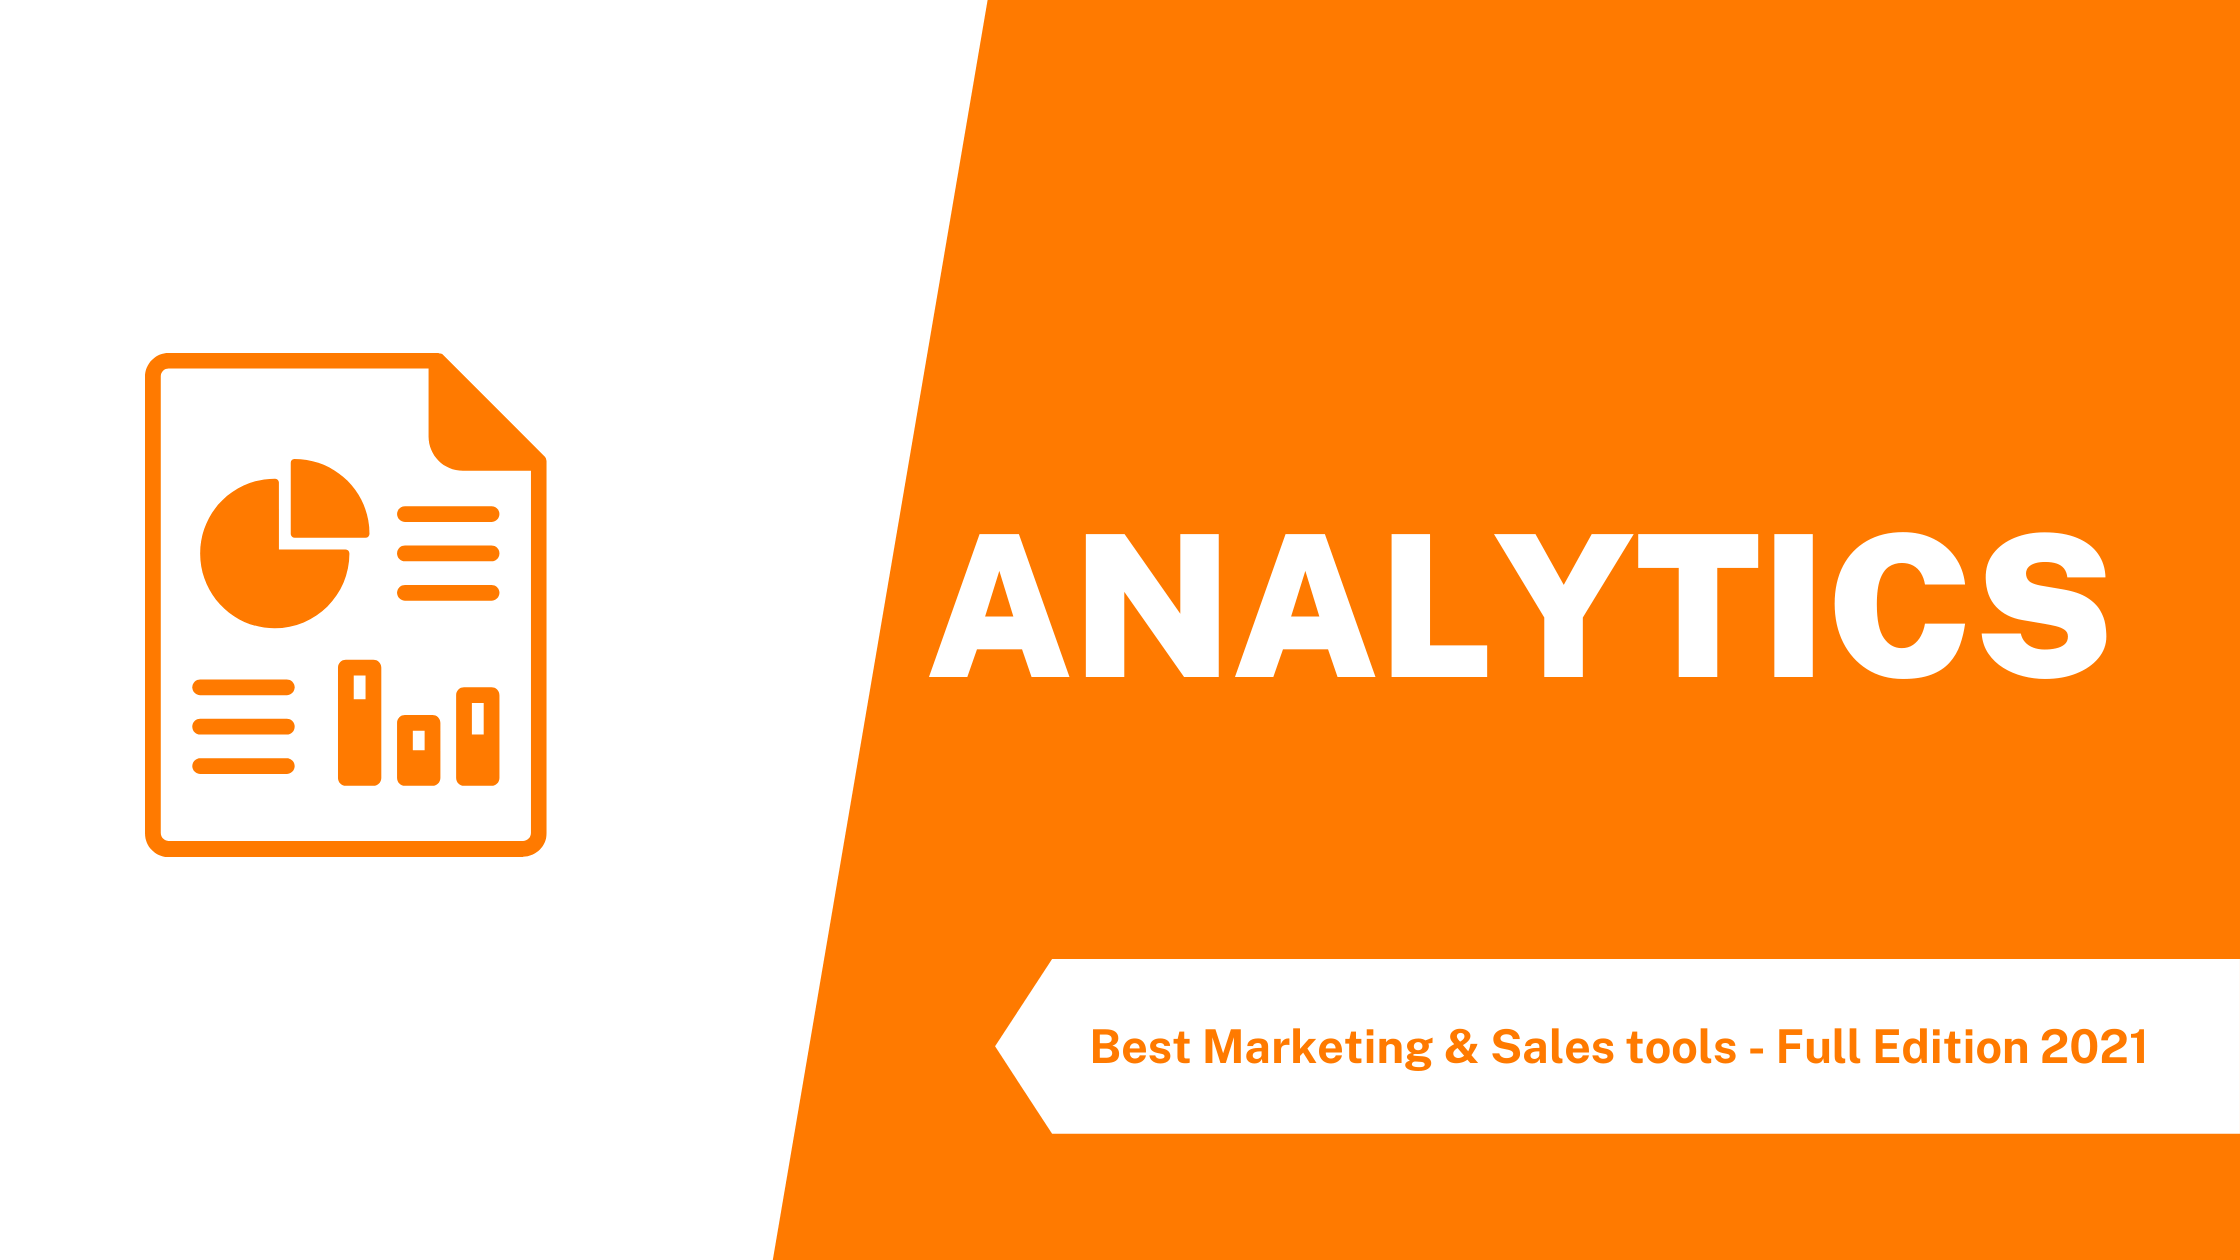 The best analytics tools for your business